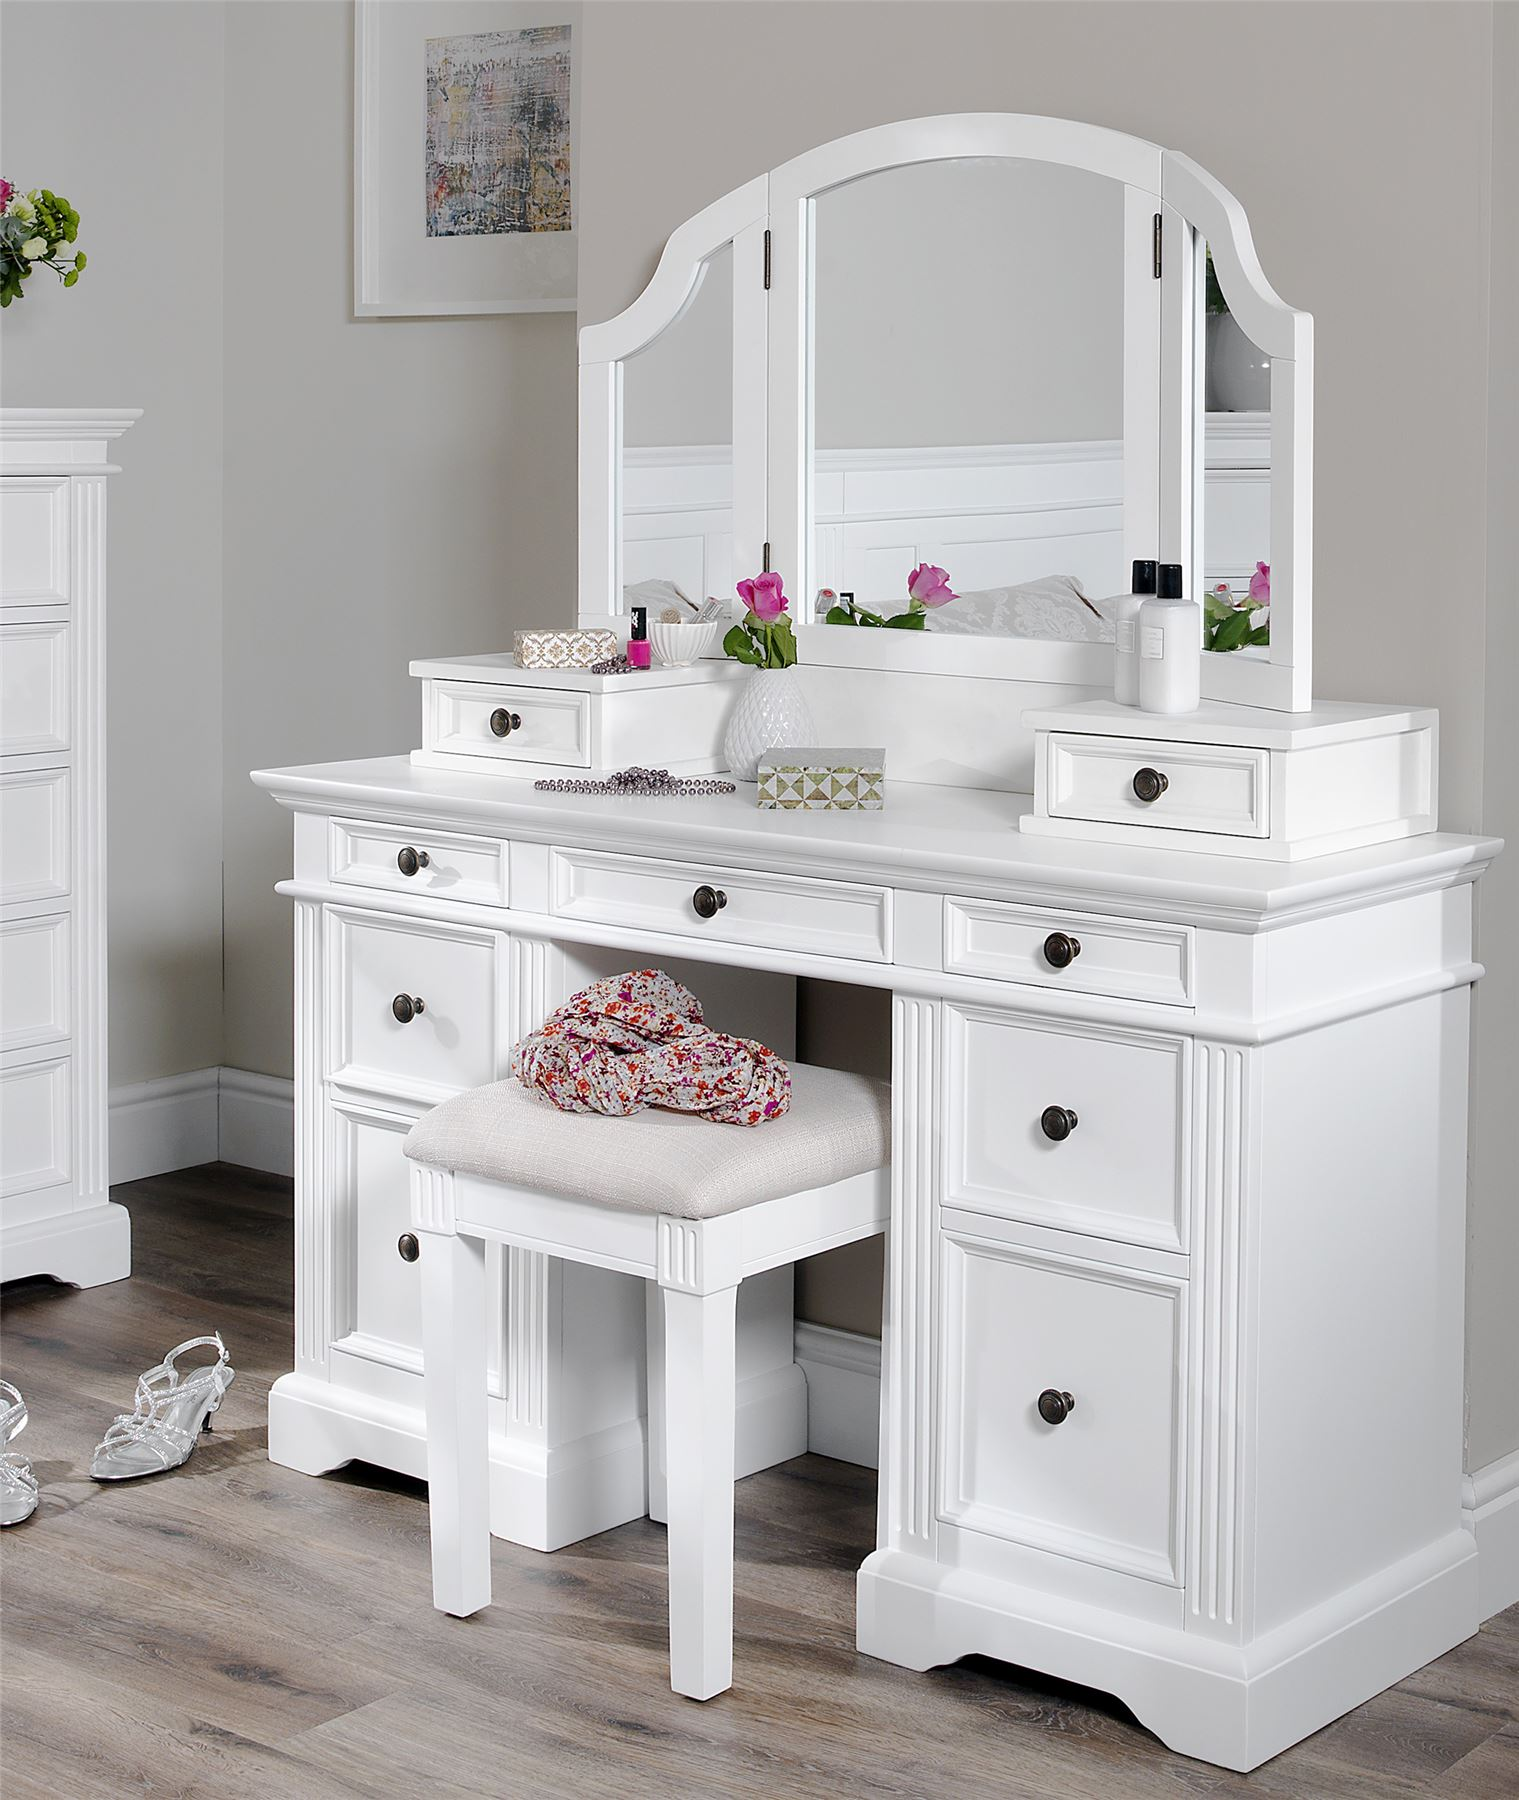 Gainsborough Dressing Table Solid White Dressing Table Deep Drawers